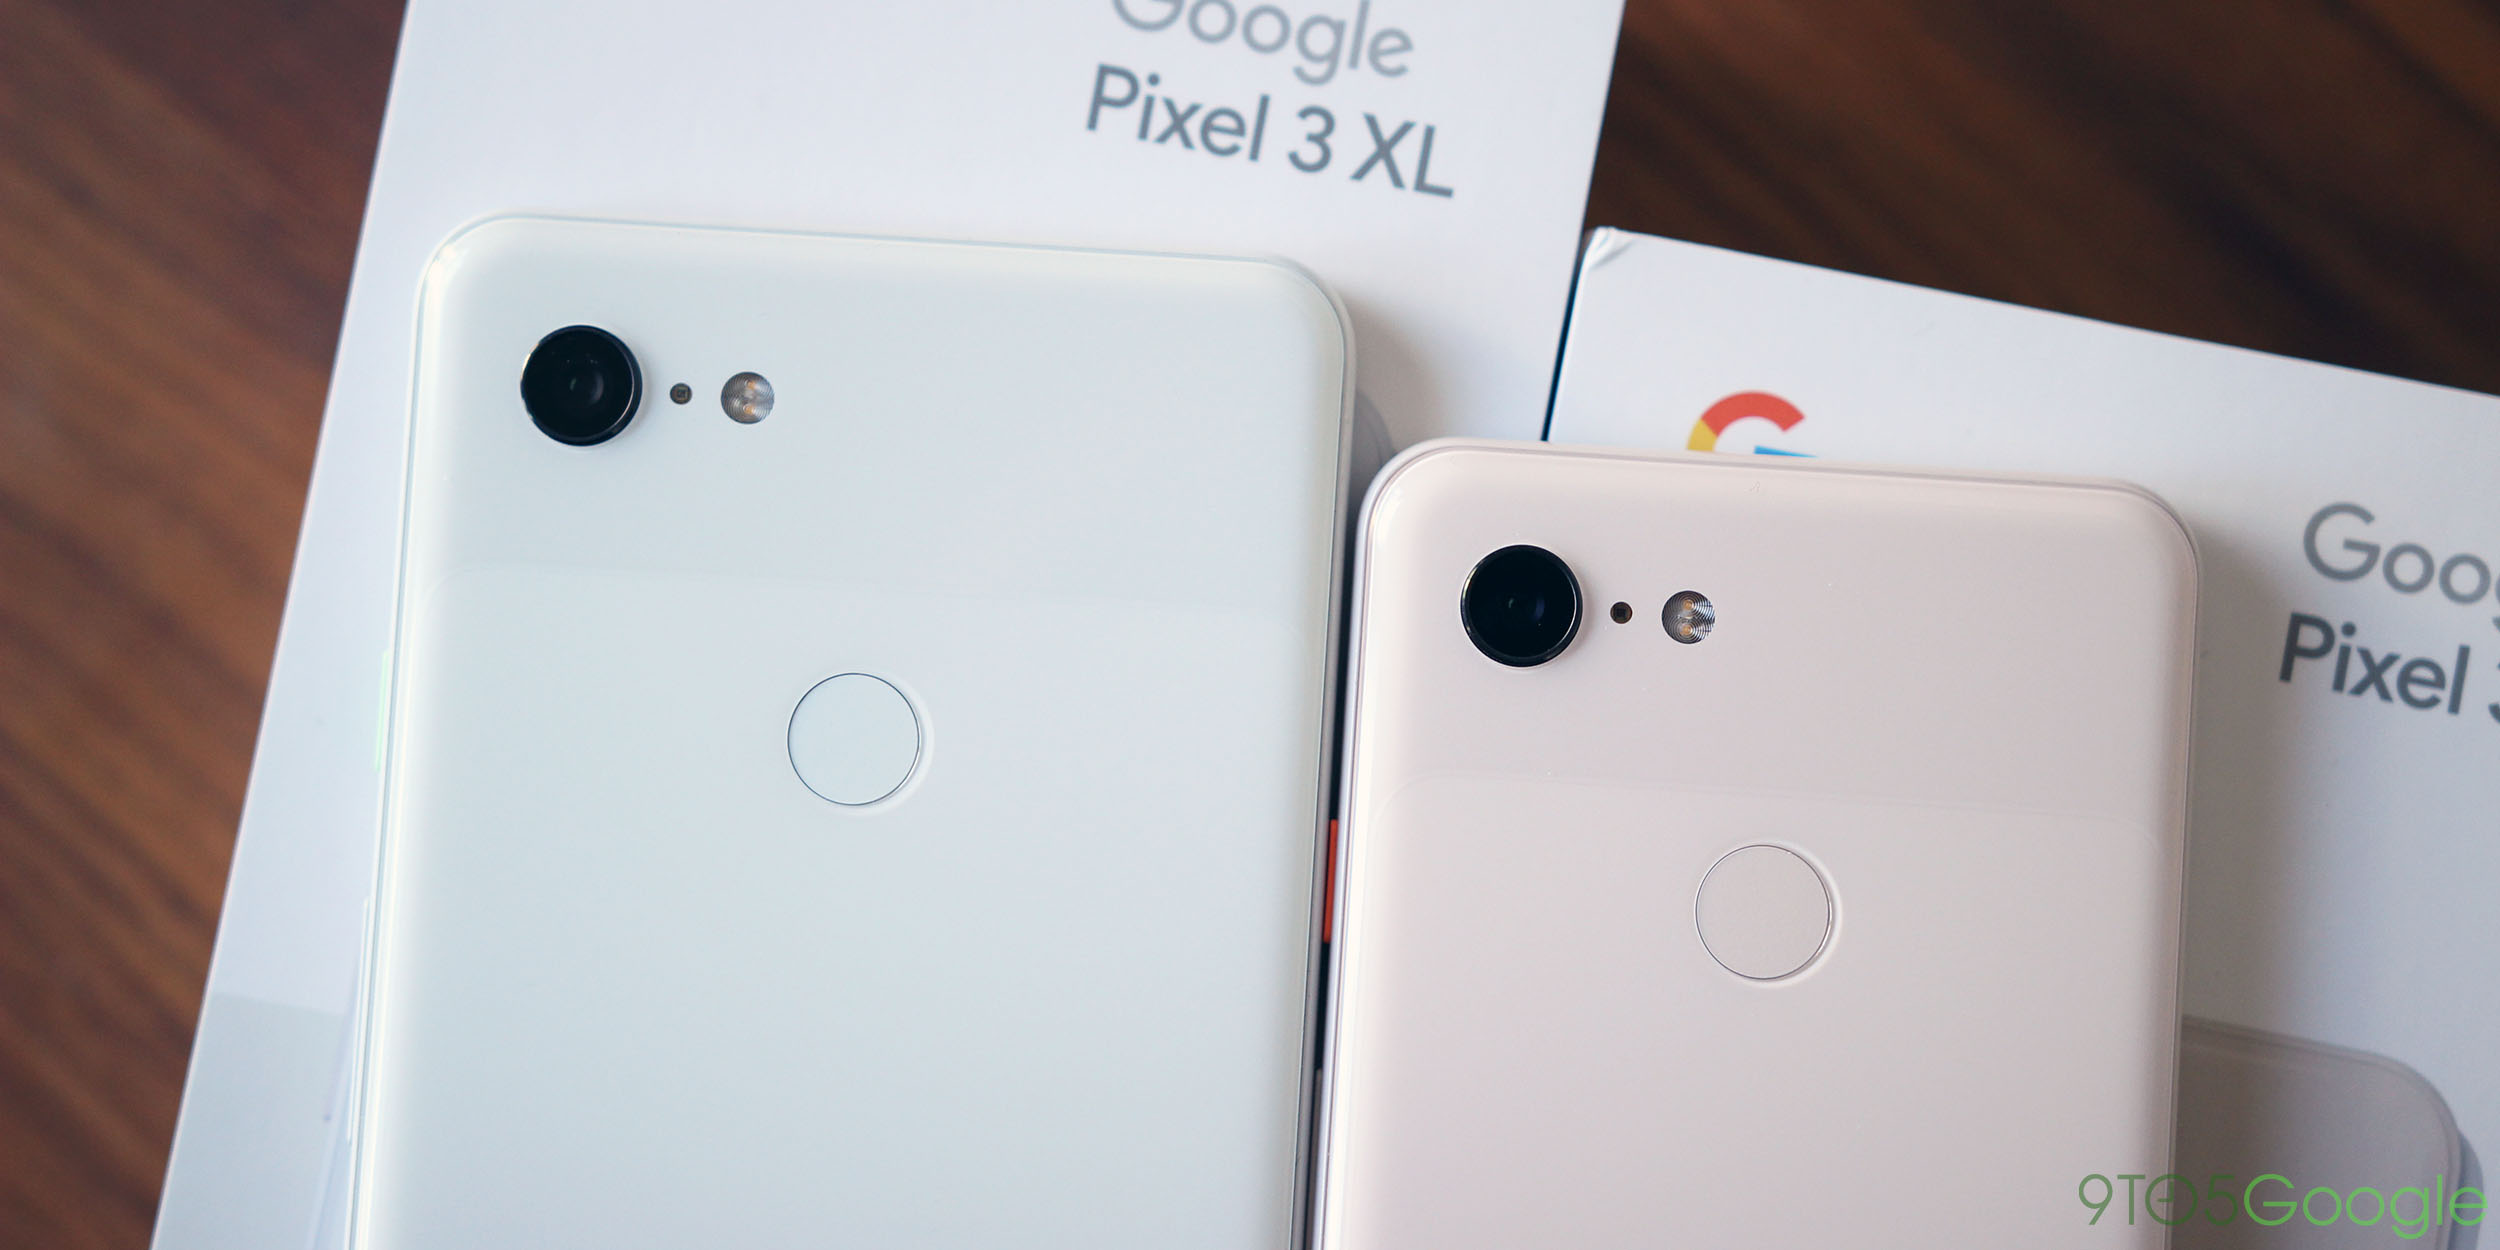 Google pixel 3 cost in usa